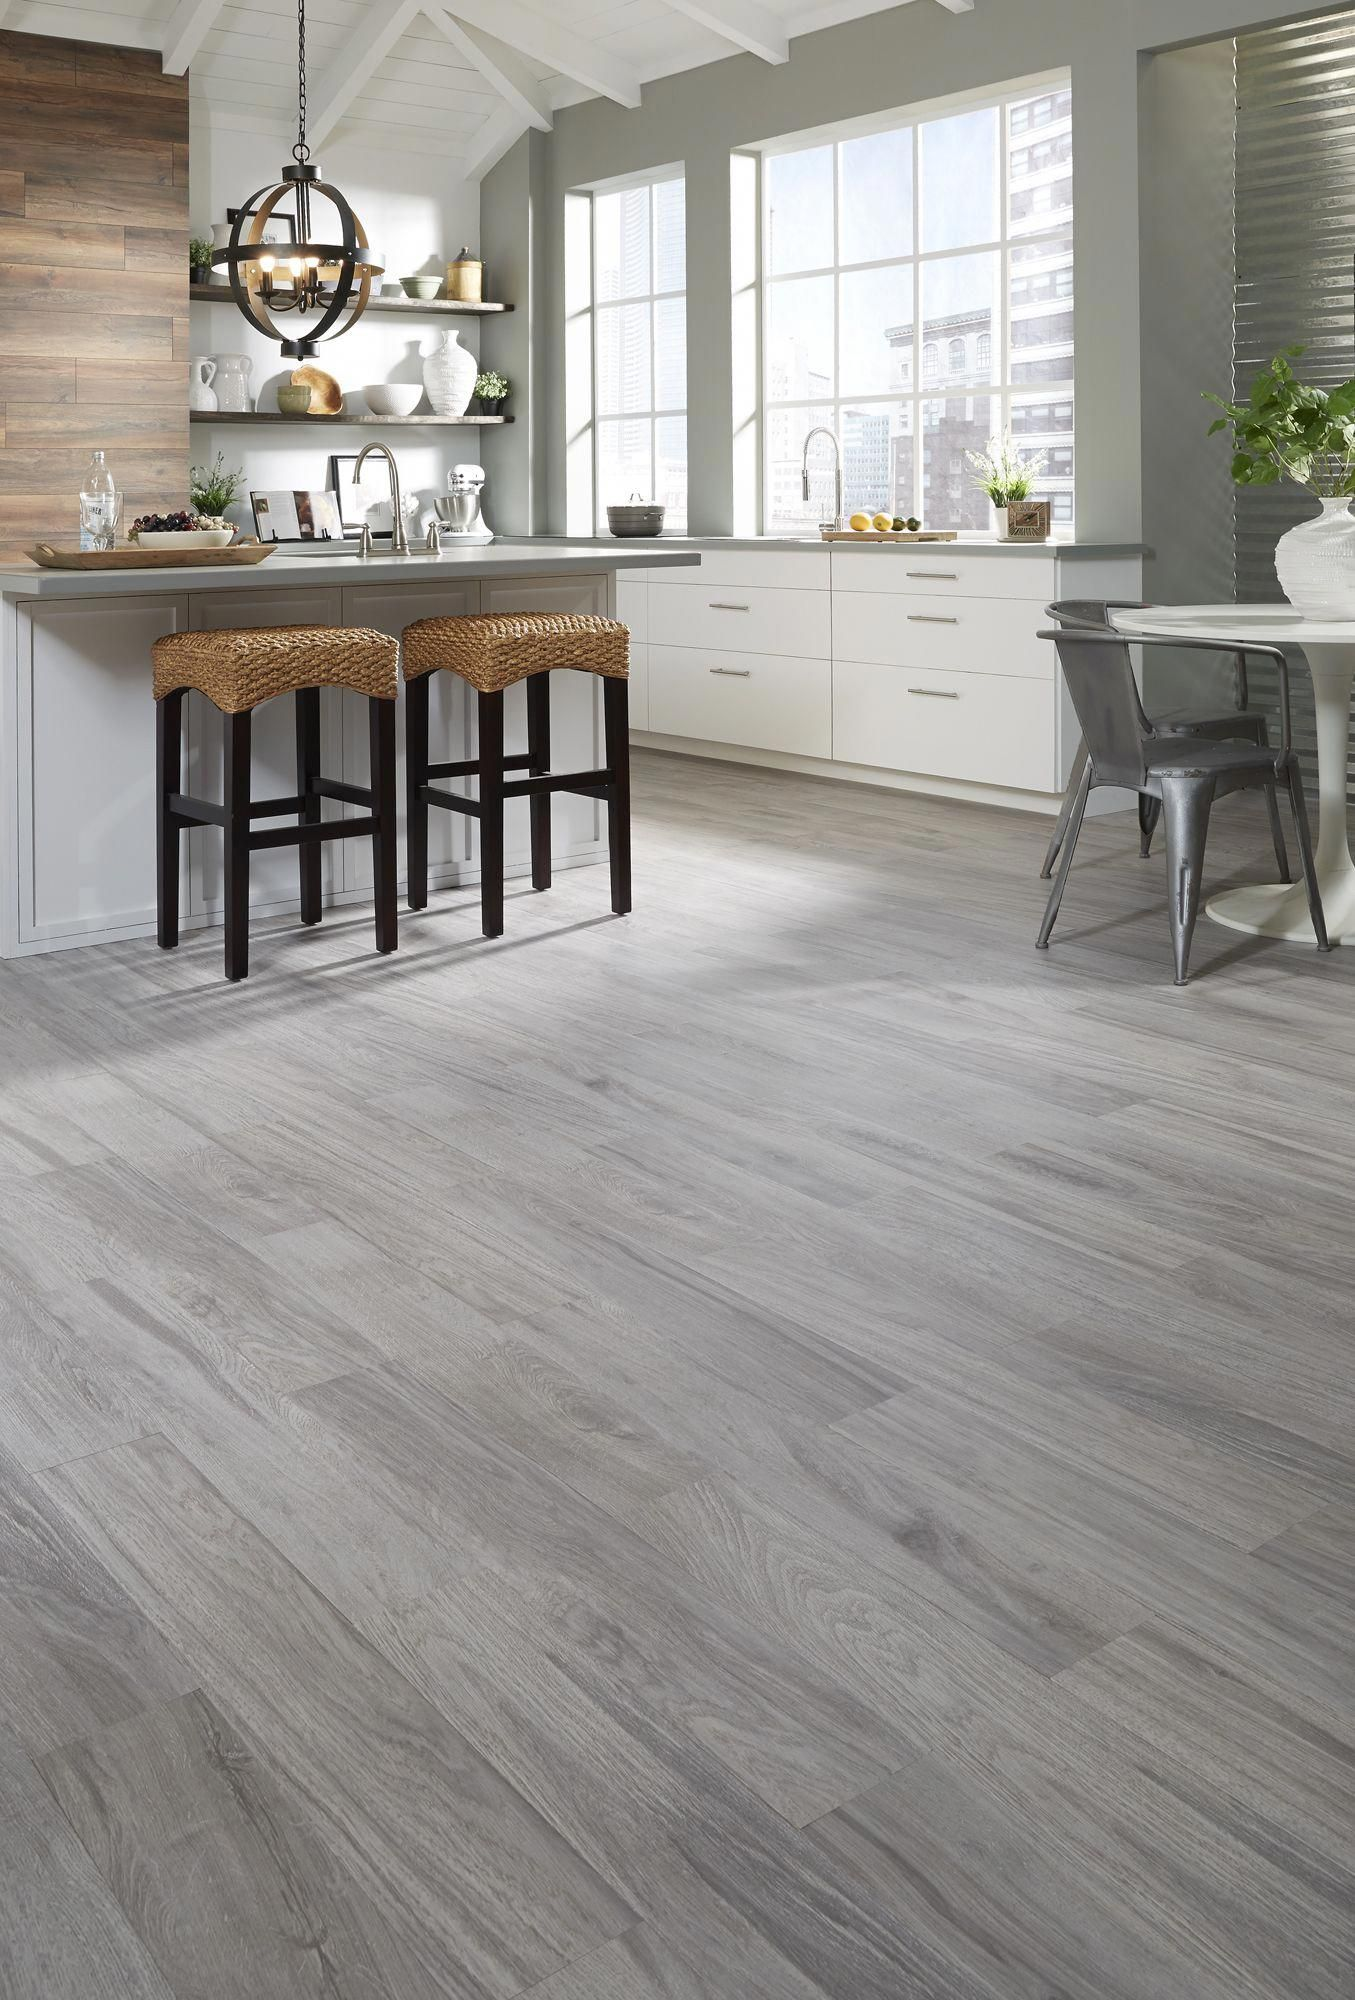 The Look Of Wood With The Waterproof Benefits Of Tile That S